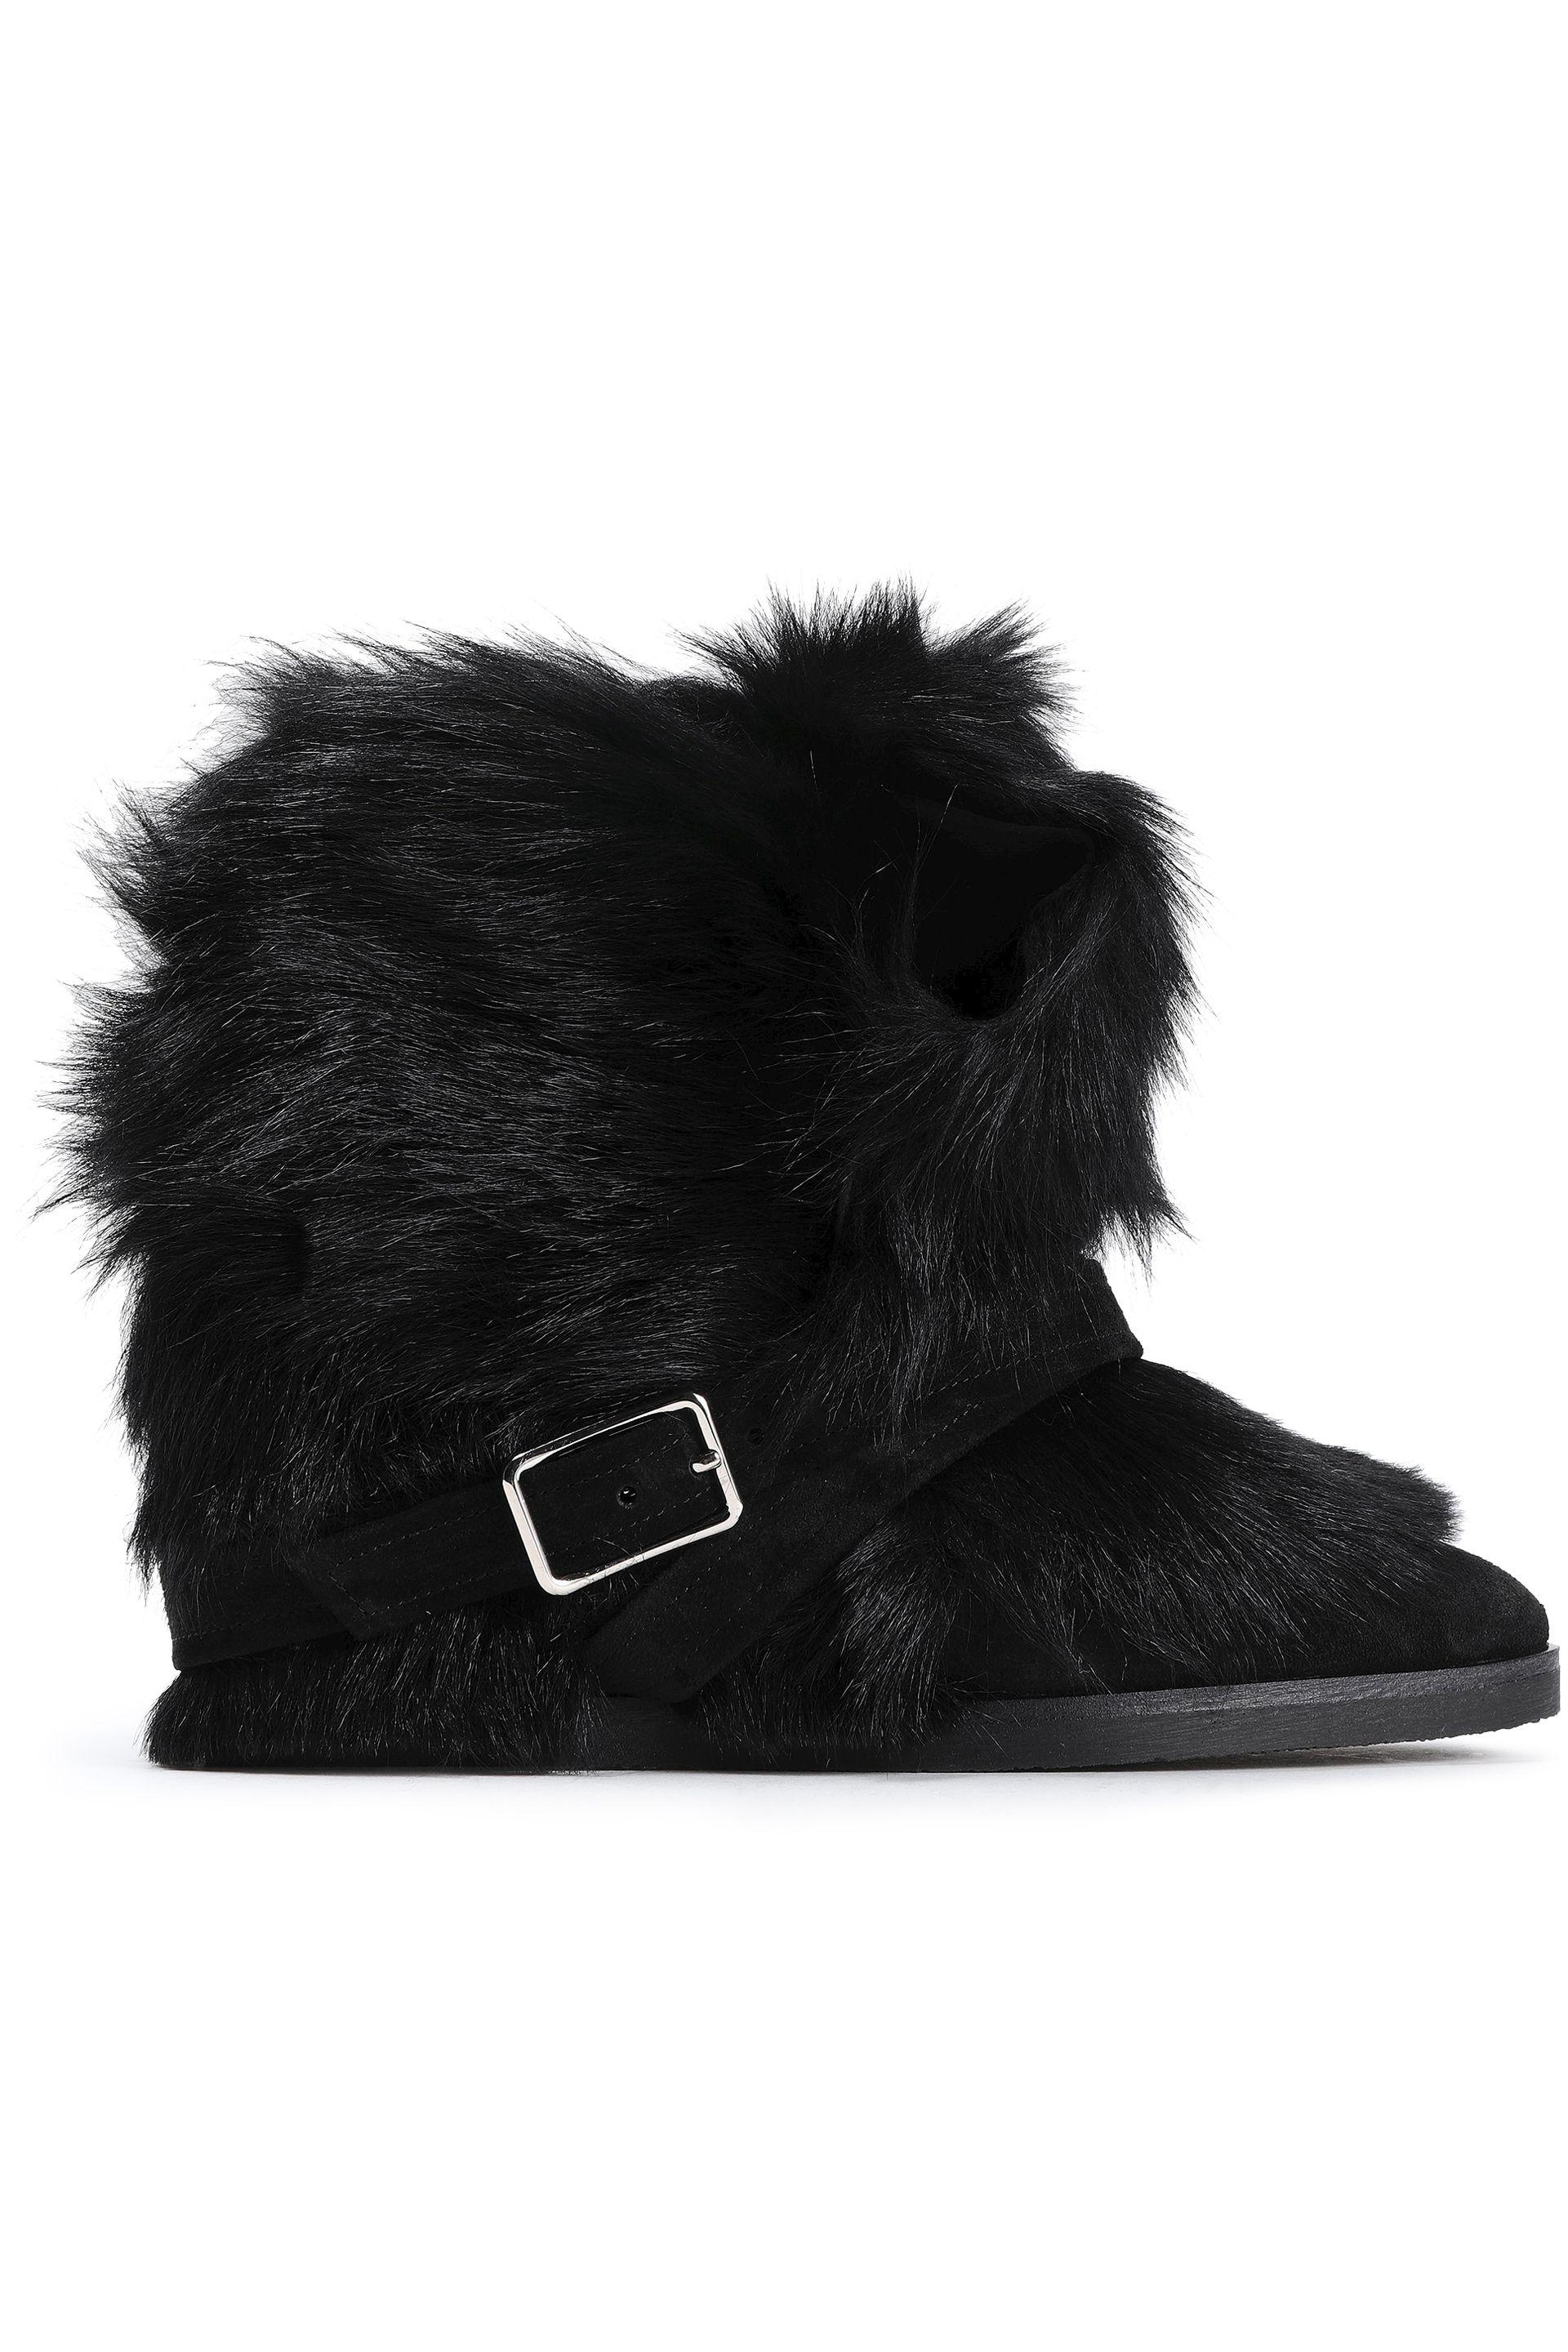 a75045cb64b87 Gianvito Rossi. Women's Woman Cortina Buckled Shearling Ankle Boots Black